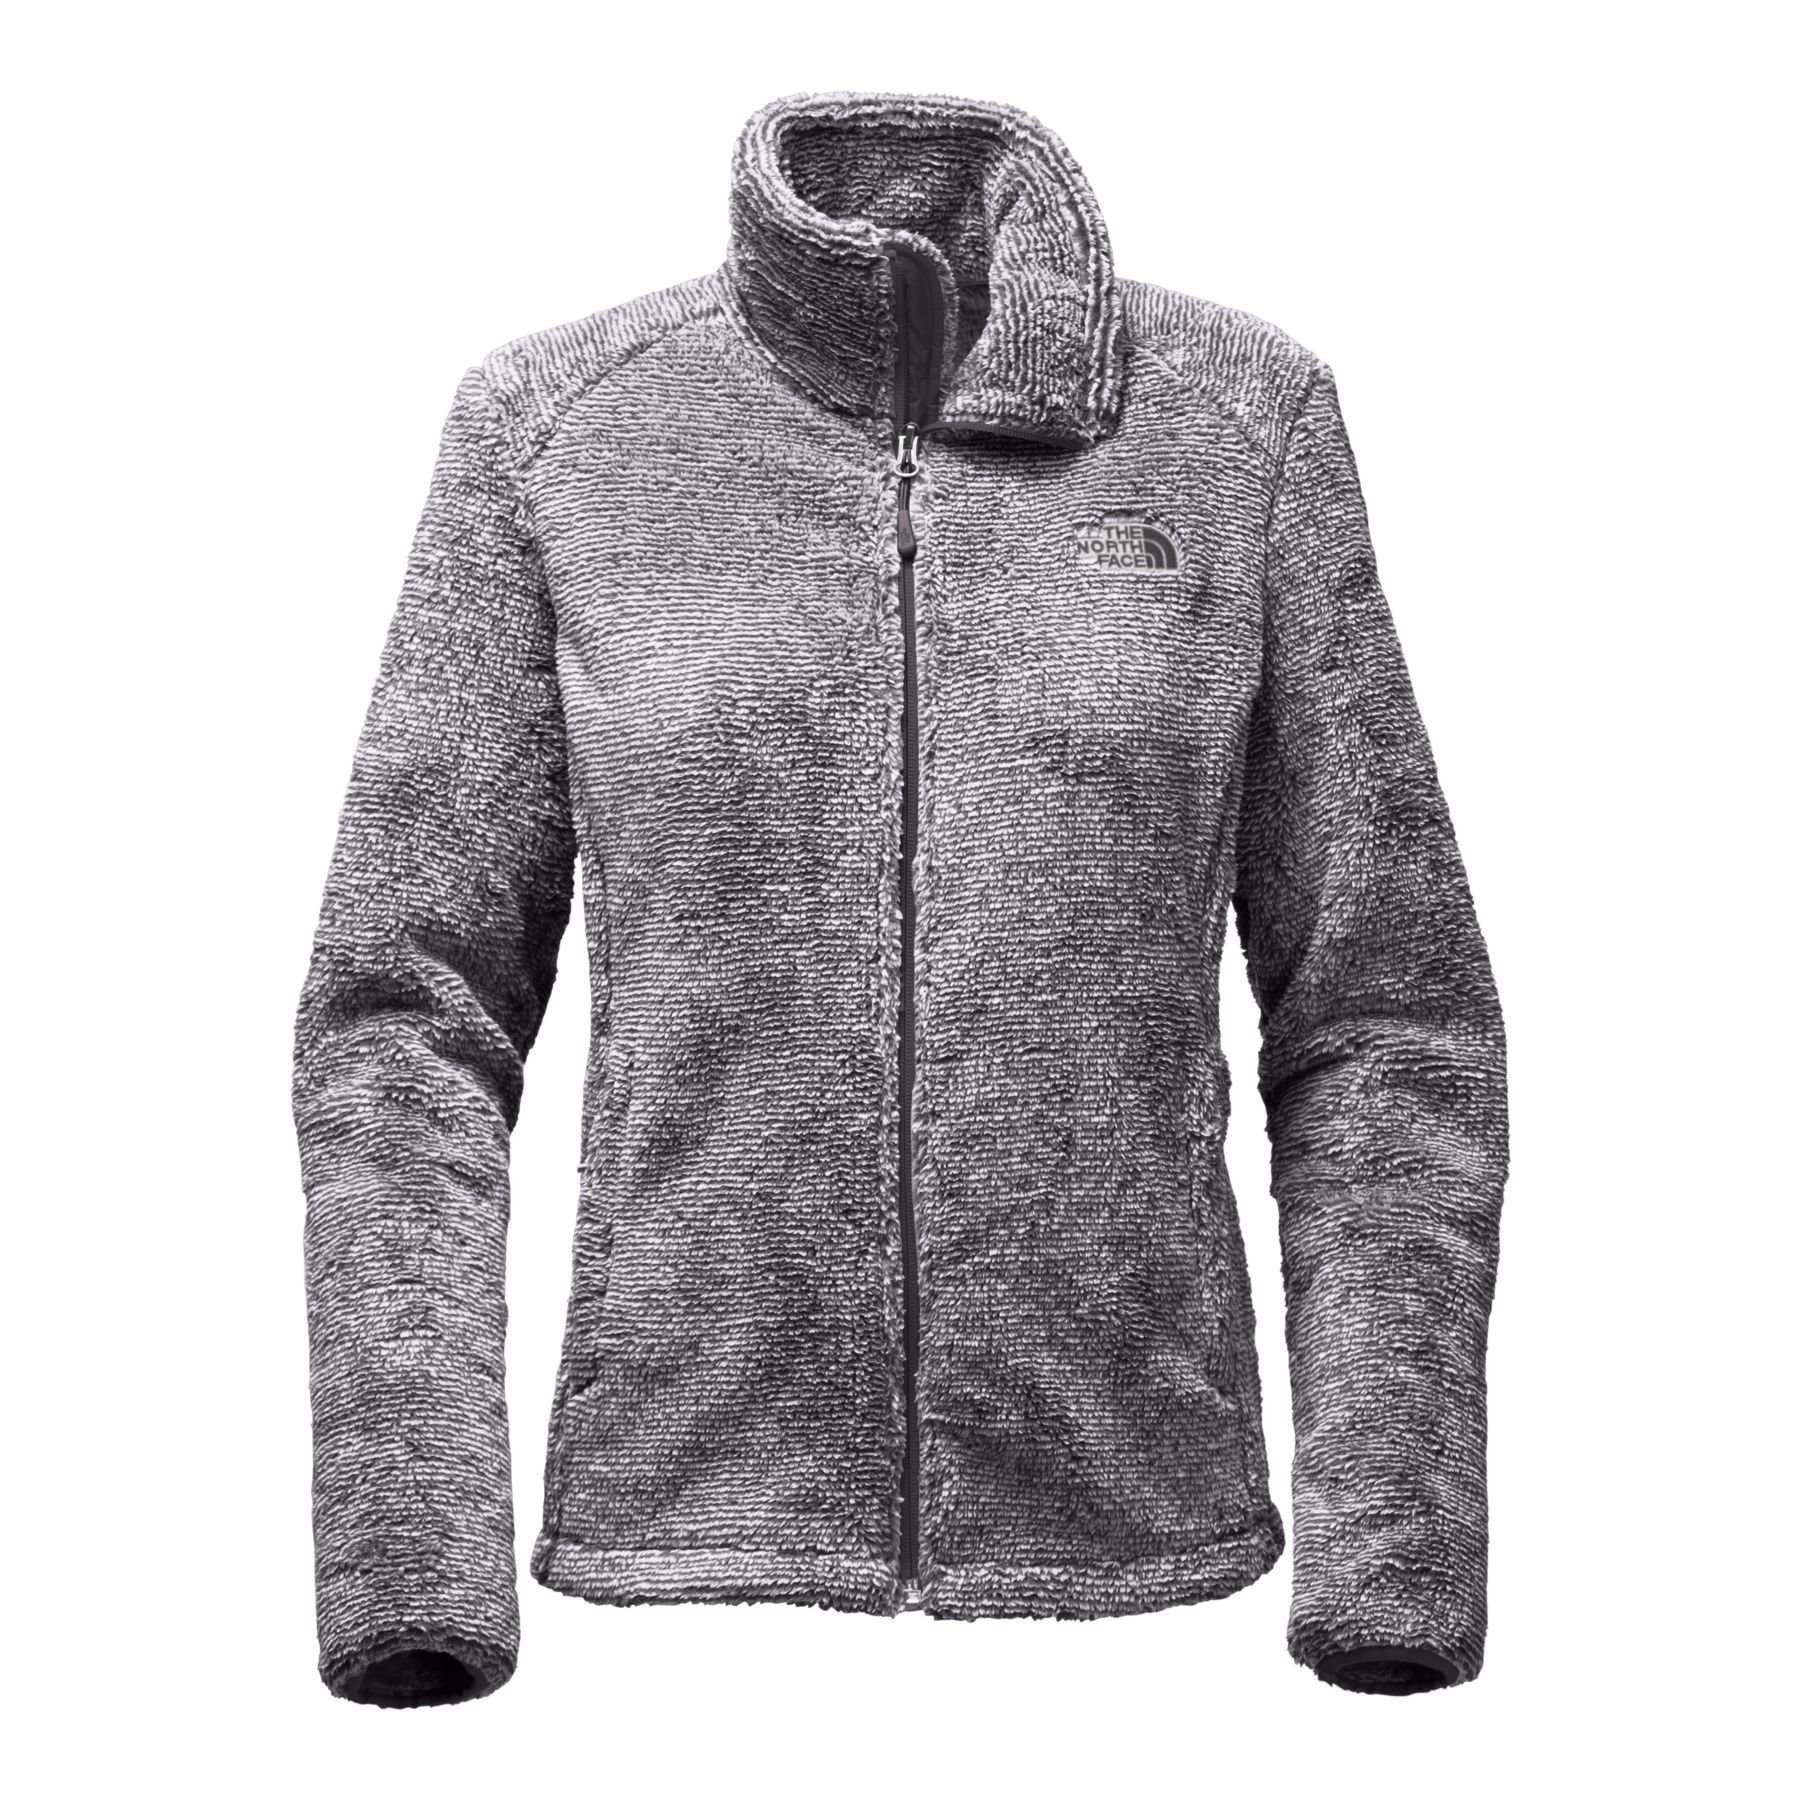 The North Face Women's Osito 2 Jacket - Weathered Black & Vintage White Stripe - M